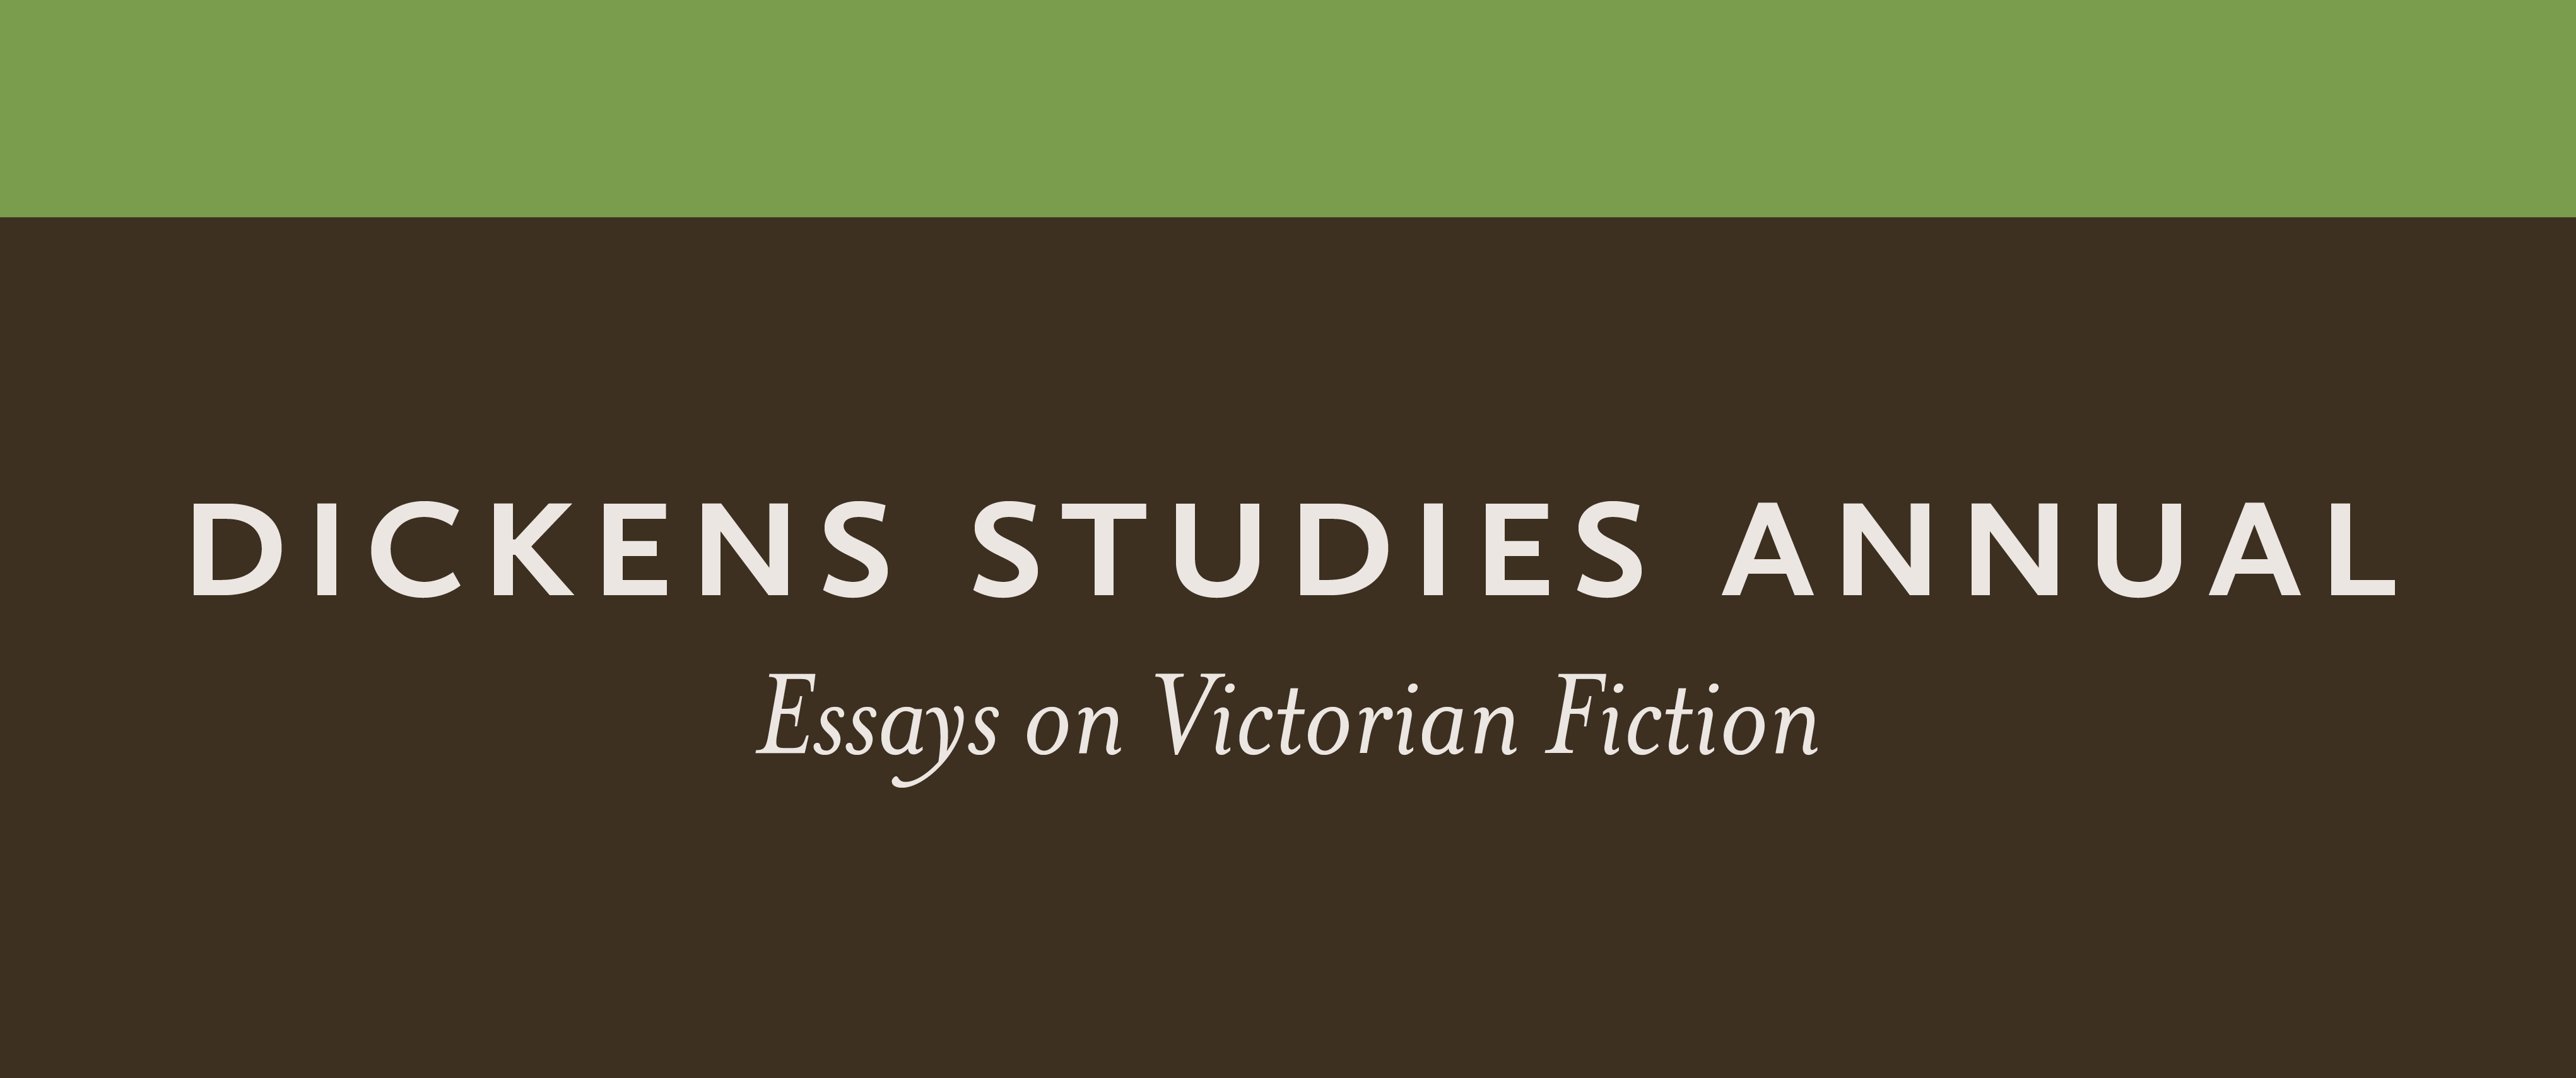 Dickens Study Annual